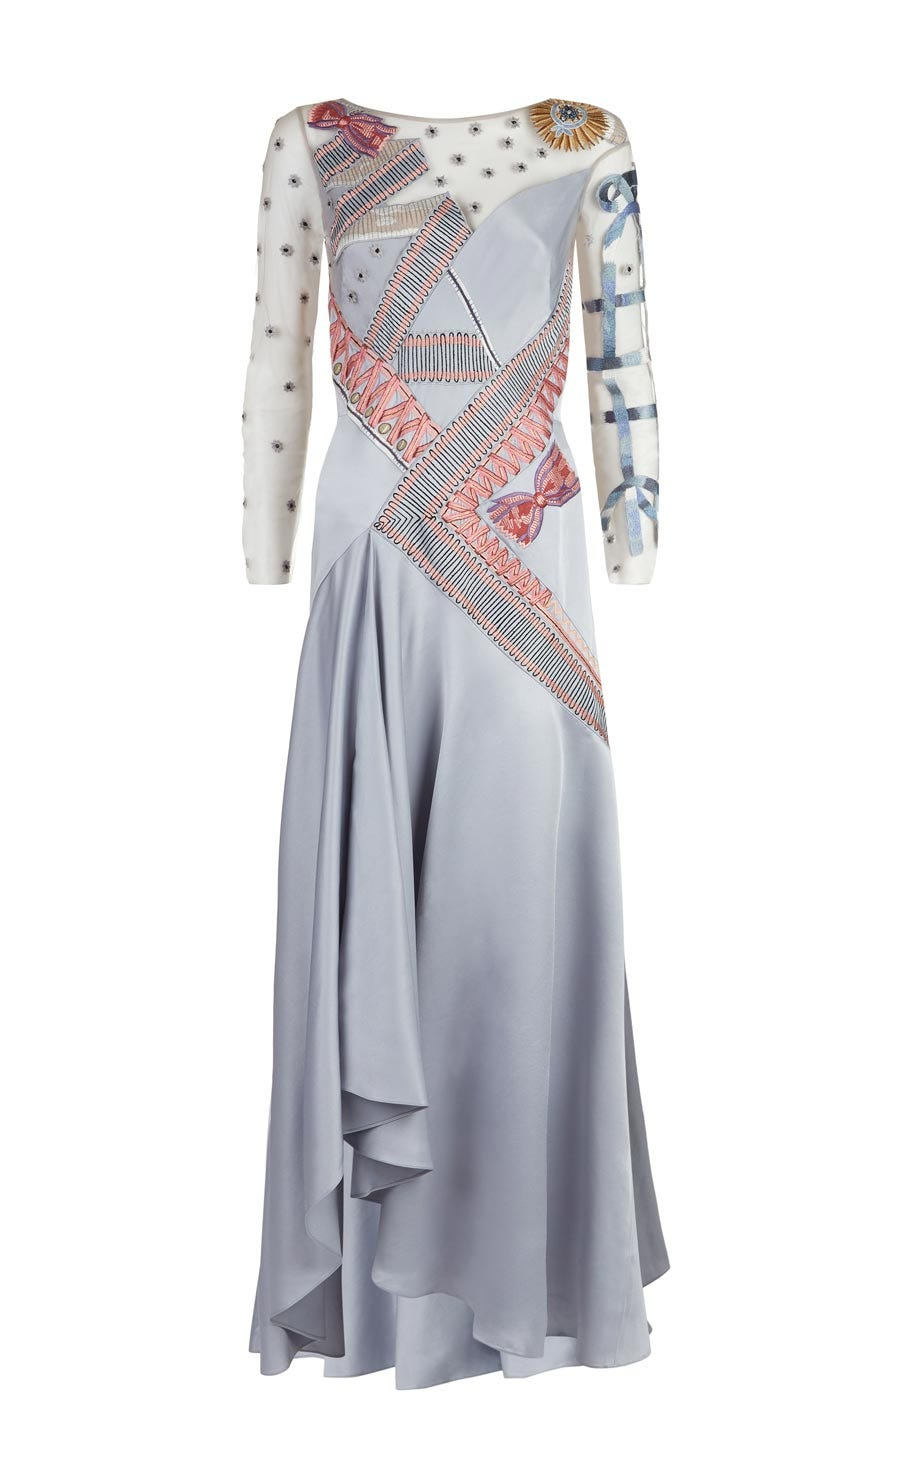 Kite Sleeved Gown